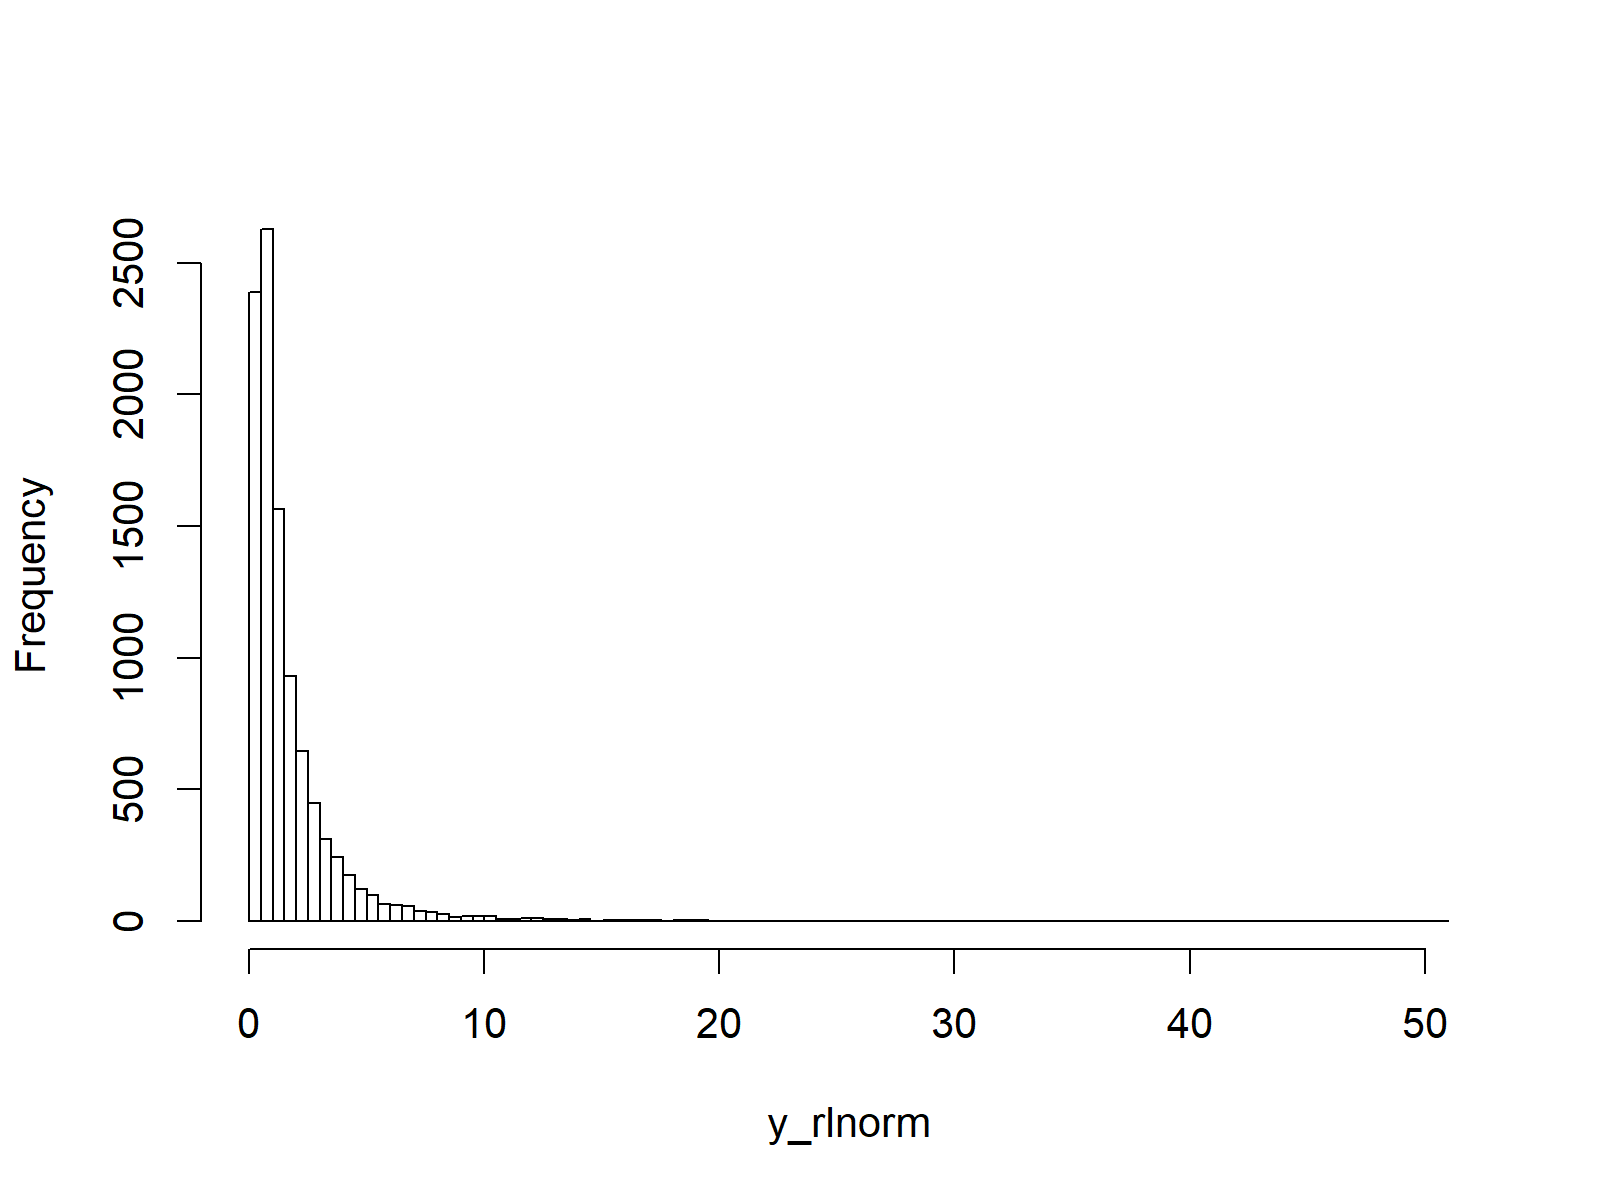 rlnorm function in r